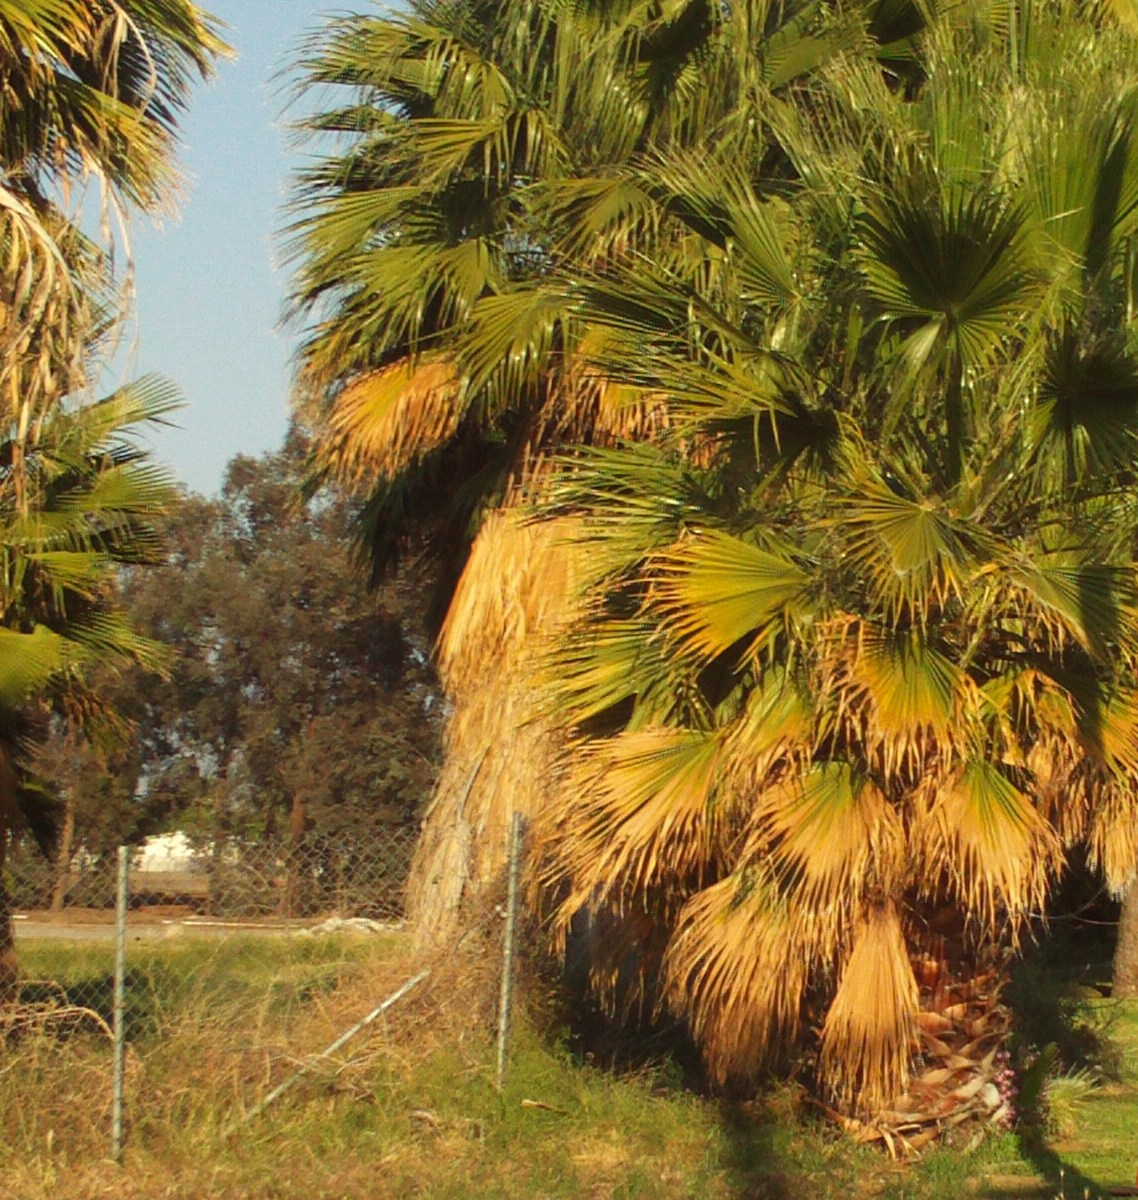 Washingtonian palm trees in Southern California.